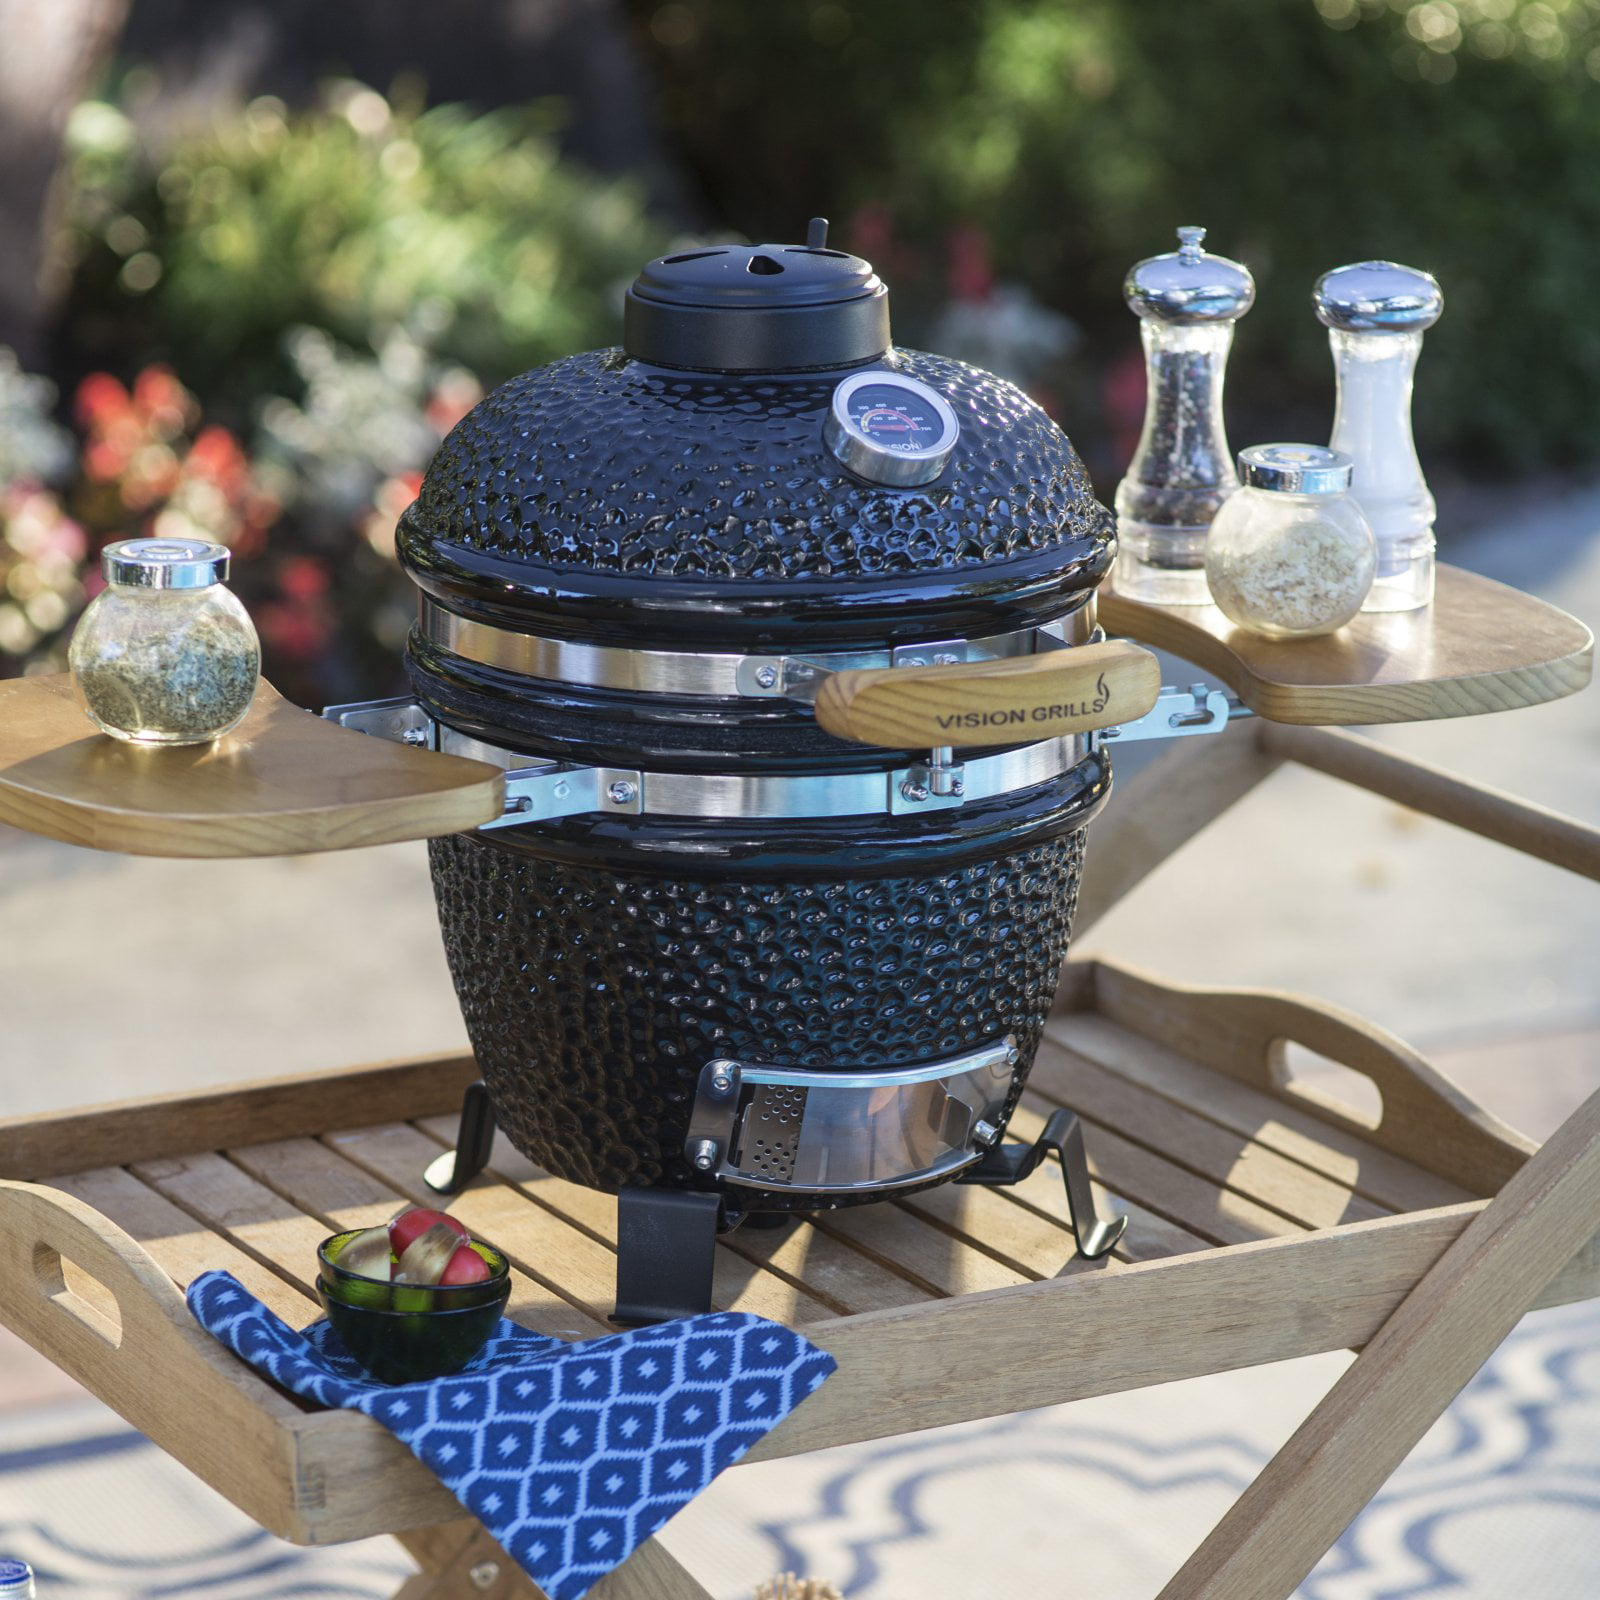 Vision Grills Classic P Series Kamado Charcoal Grill by Phase 2 LLC